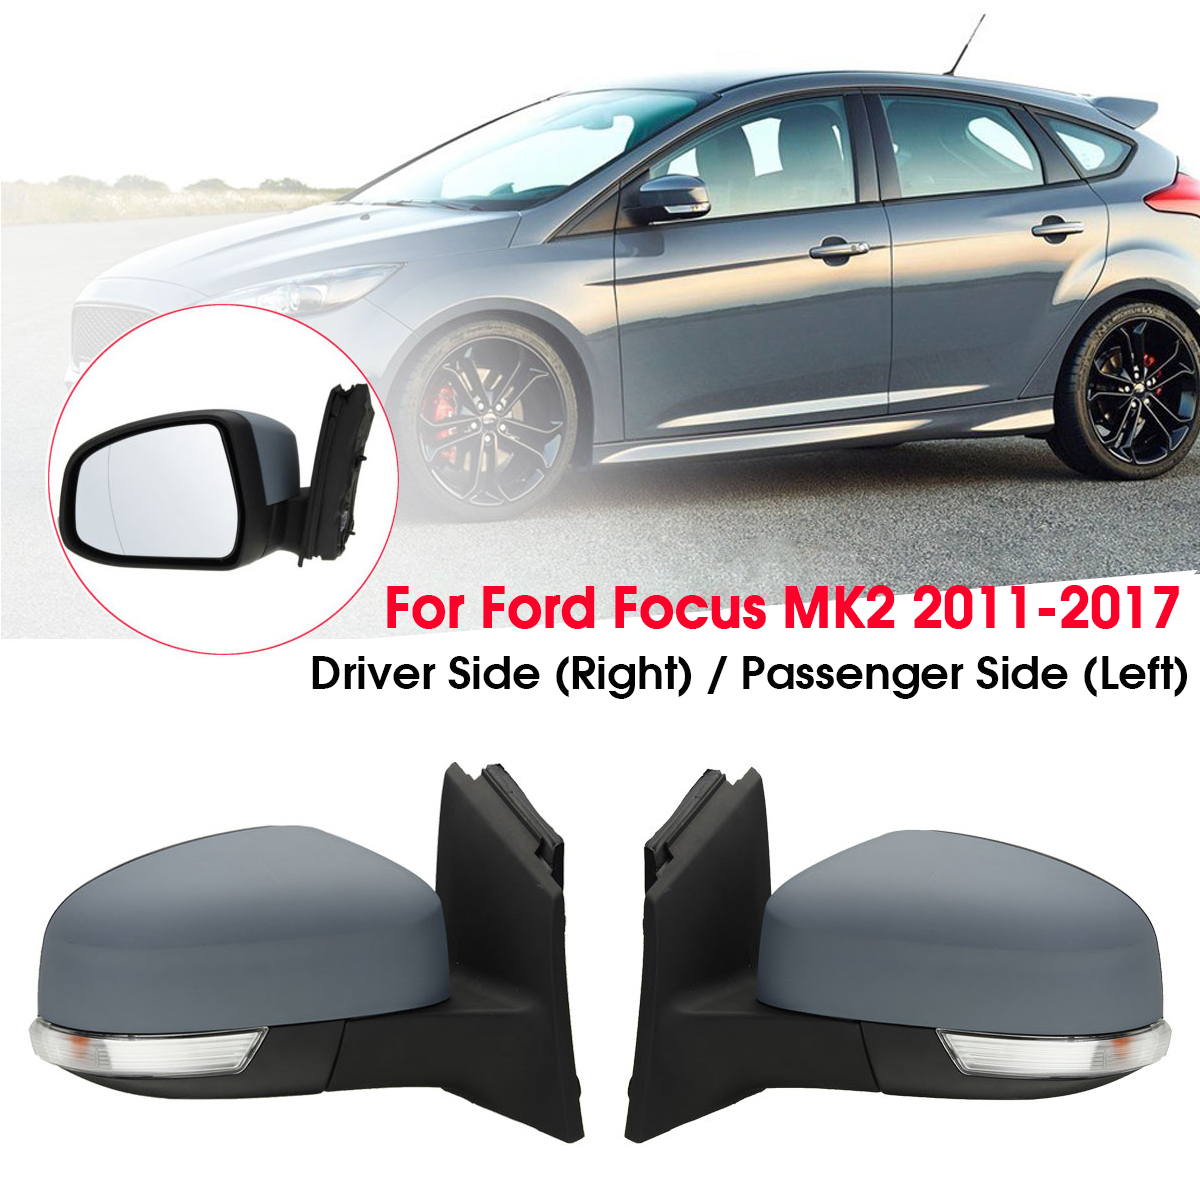 Car Door Electric Wing Mirror Driver /Passenger Side For Ford for Focus MK2 2008 2009 2010 2011-in Mirror & Covers from Automobiles & Motorcycles    1